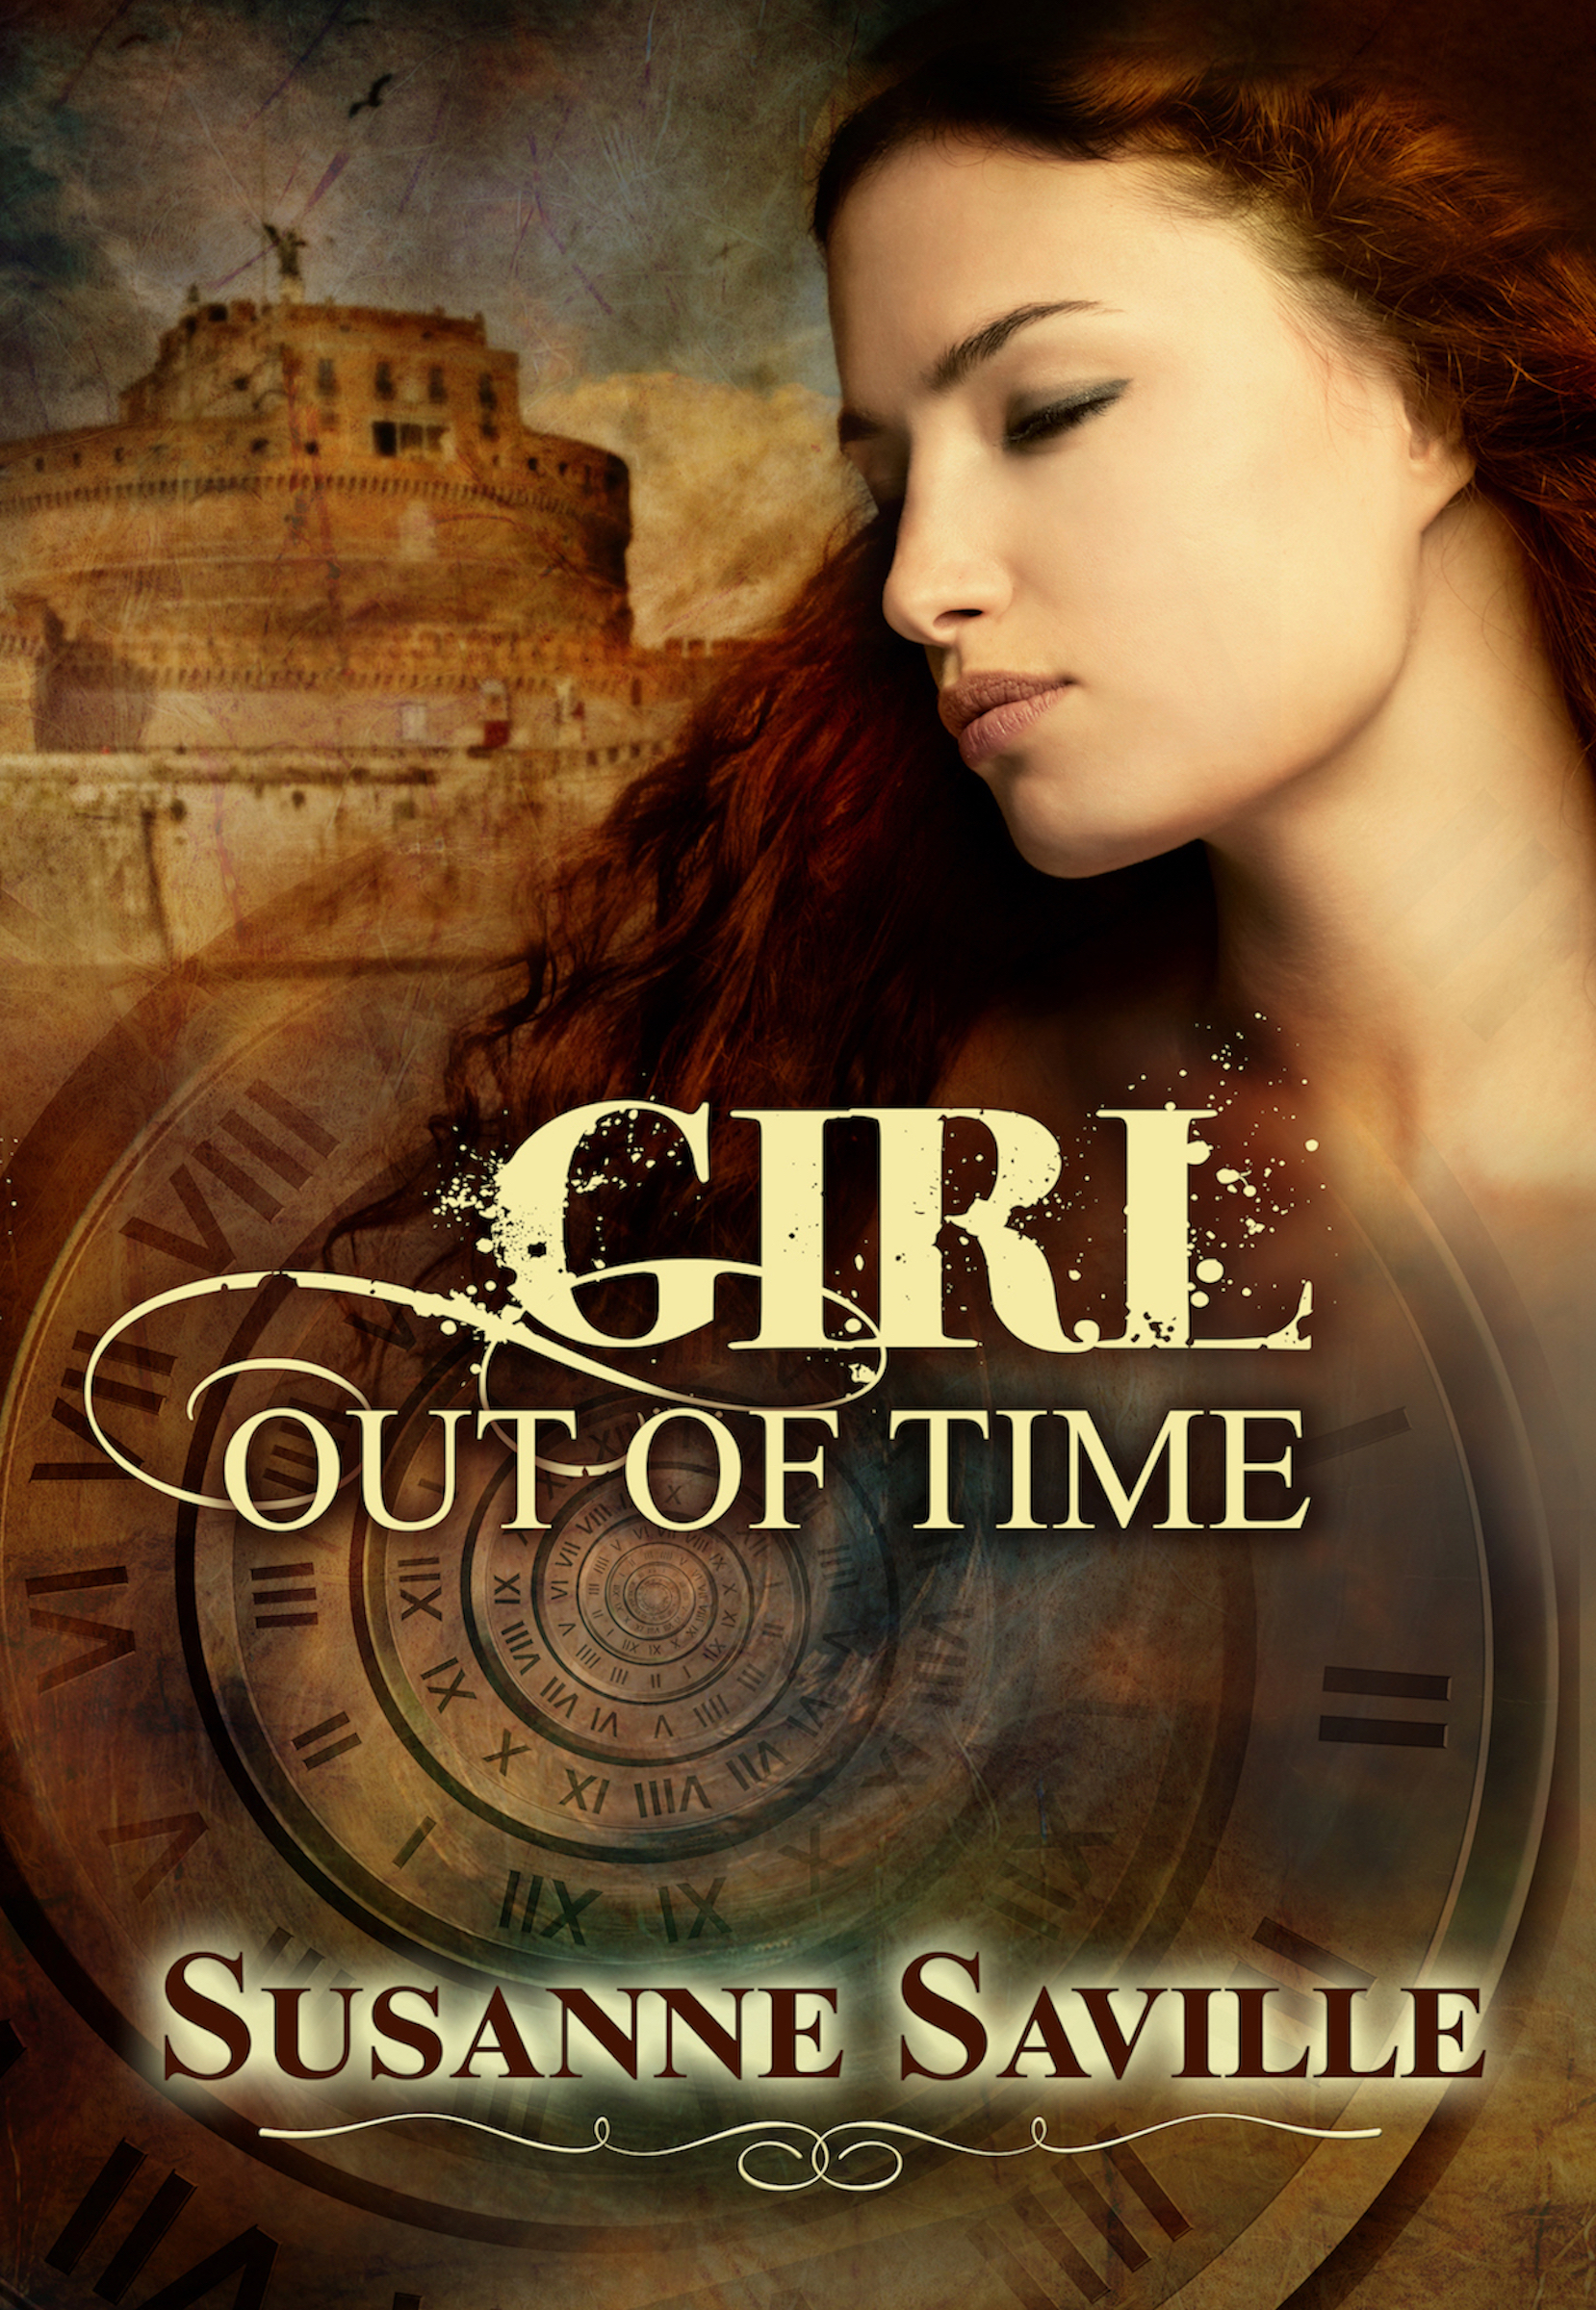 Girl Out Of Time Susanne Saville